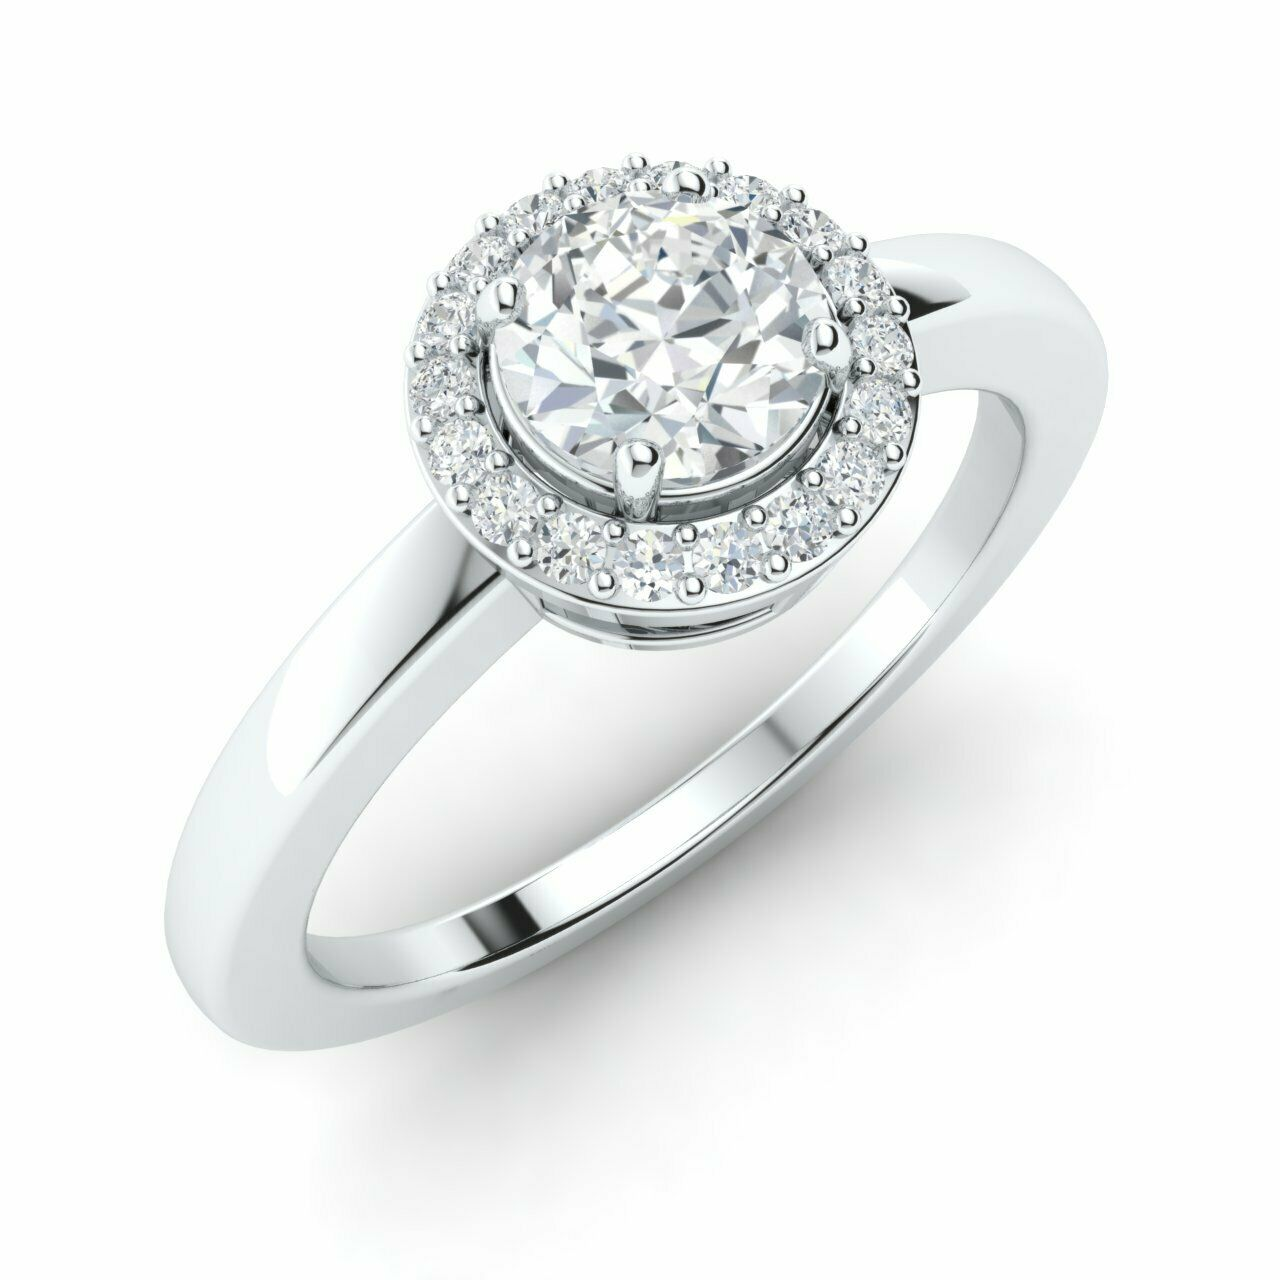 GIA Certified 0.54 Ct Real I/SI2 Diamond Engagement Ring in 14k White Gold Size7